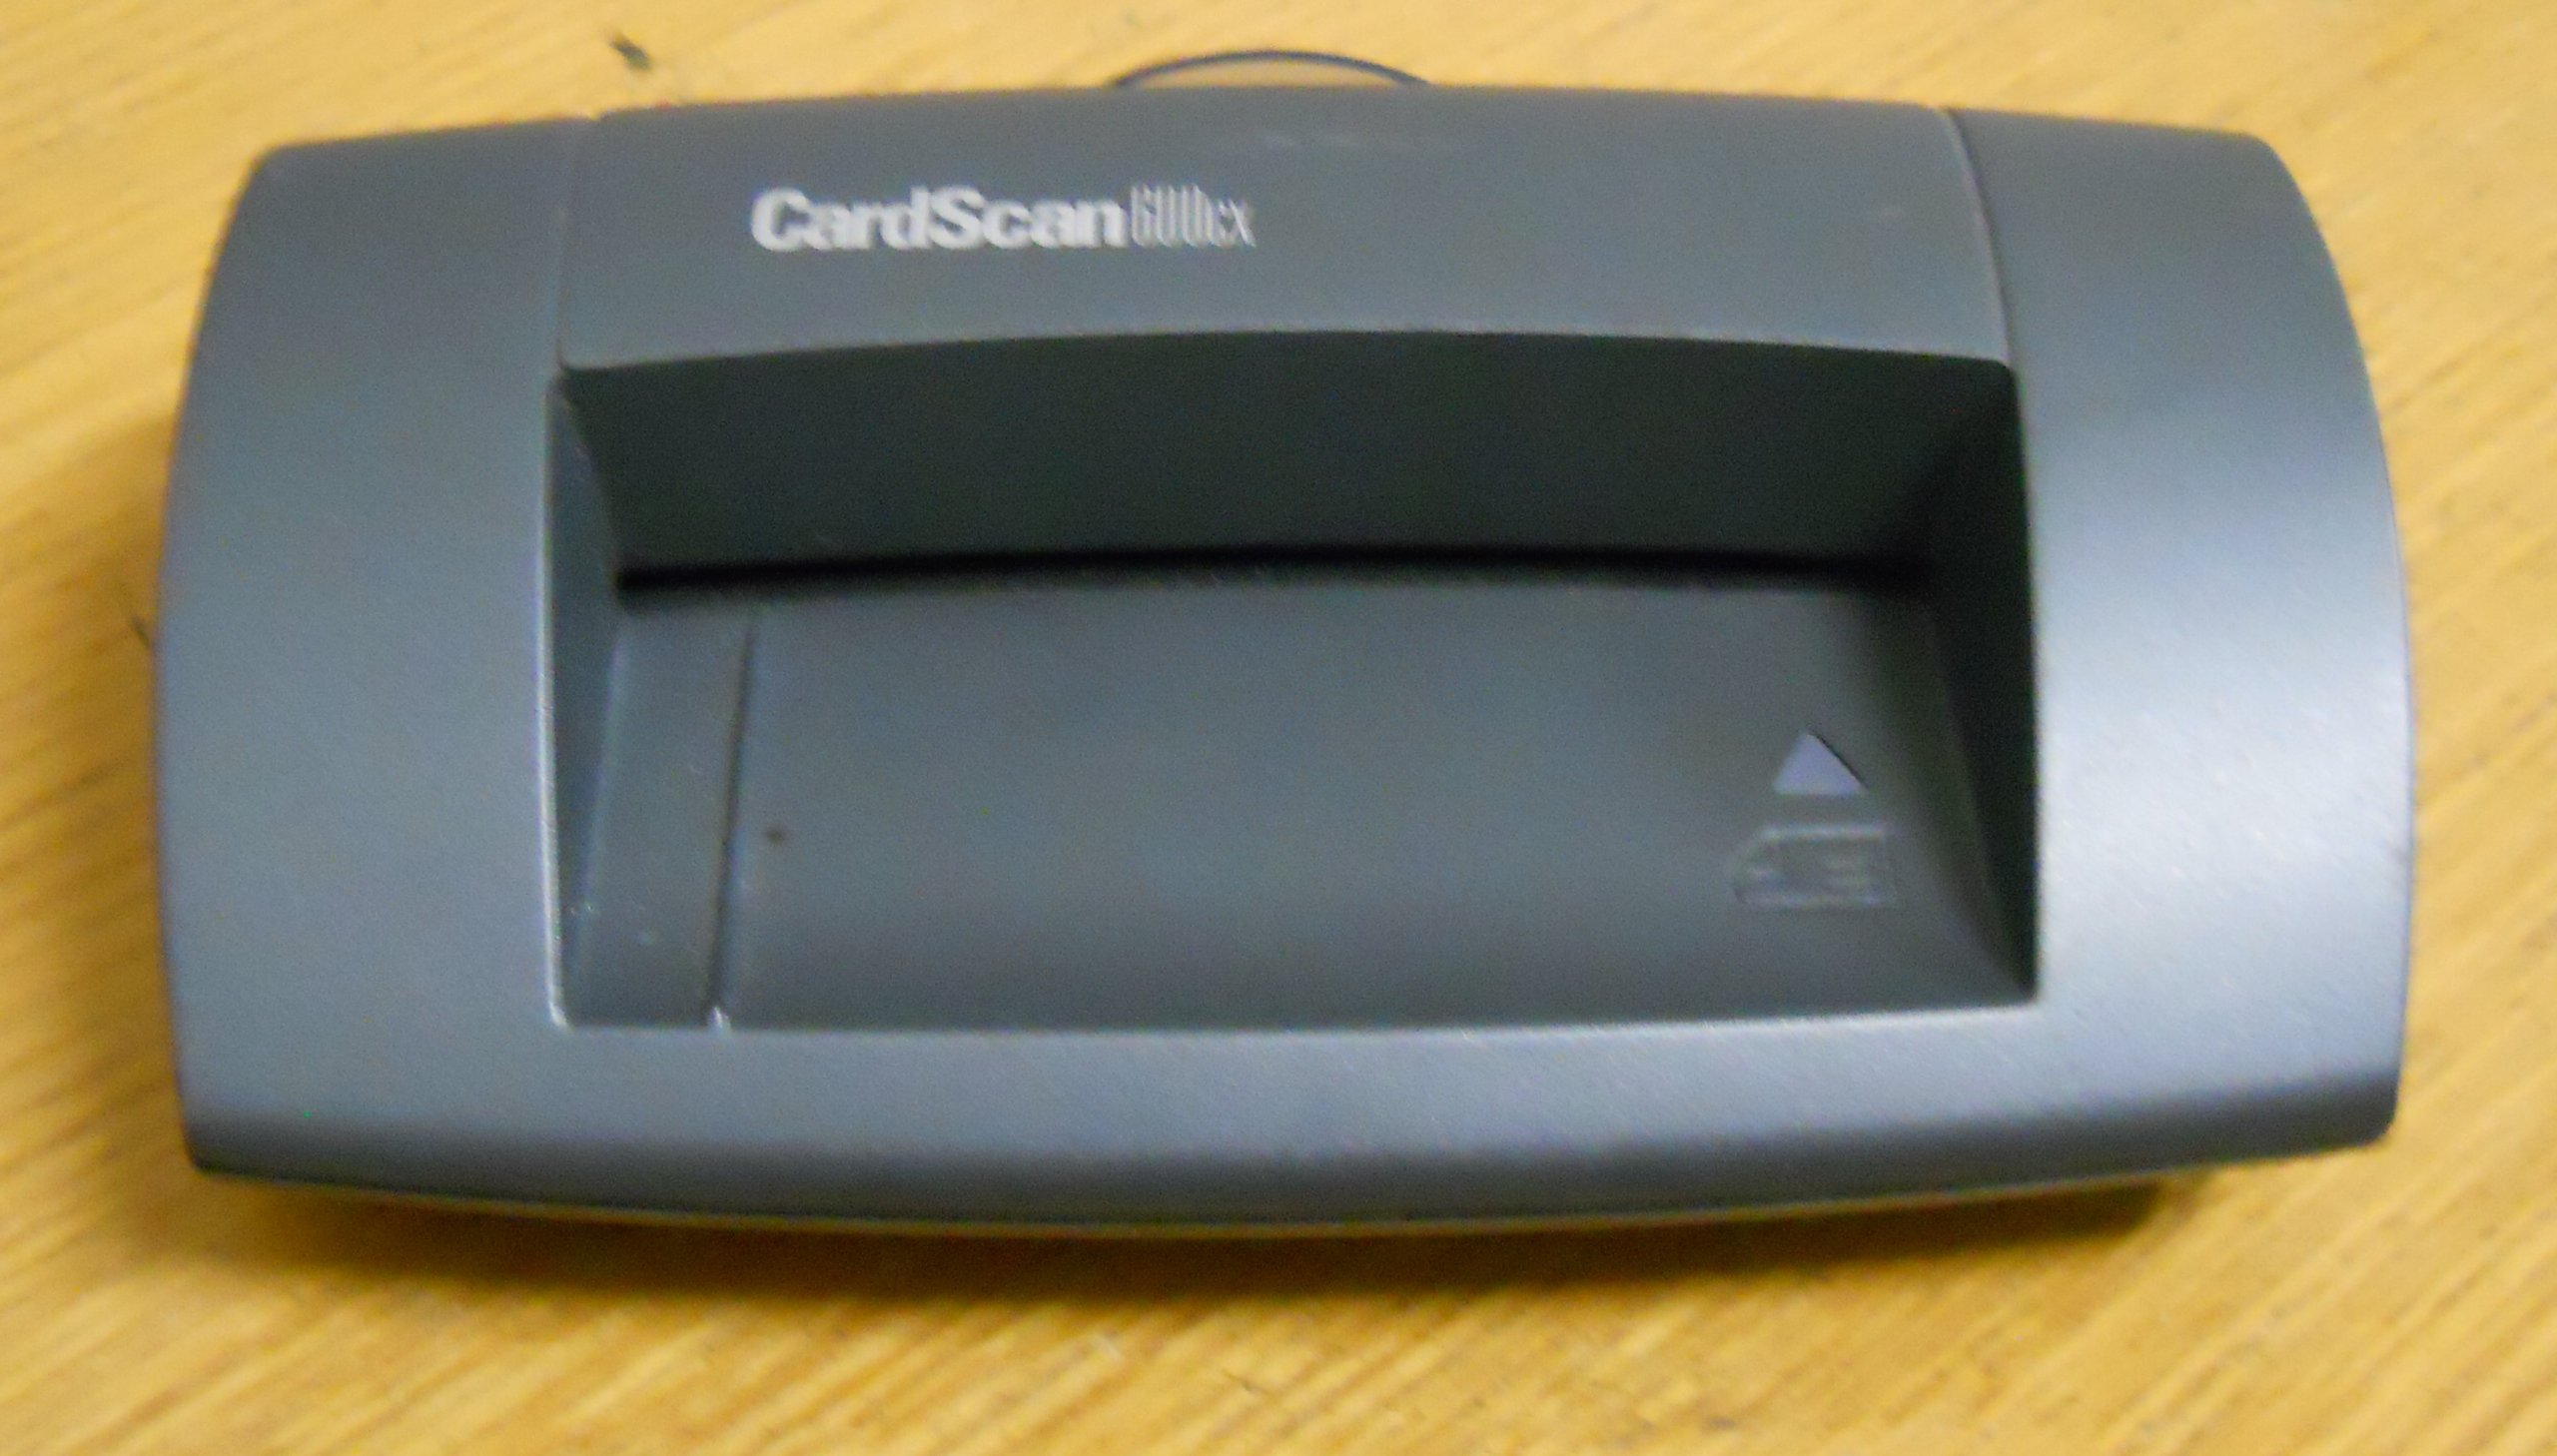 Buy corex cardscan 600cx usb desktop business card scanner in cheap buy corex cardscan 600cx usb desktop business card scanner in cheap price on mibaba colourmoves